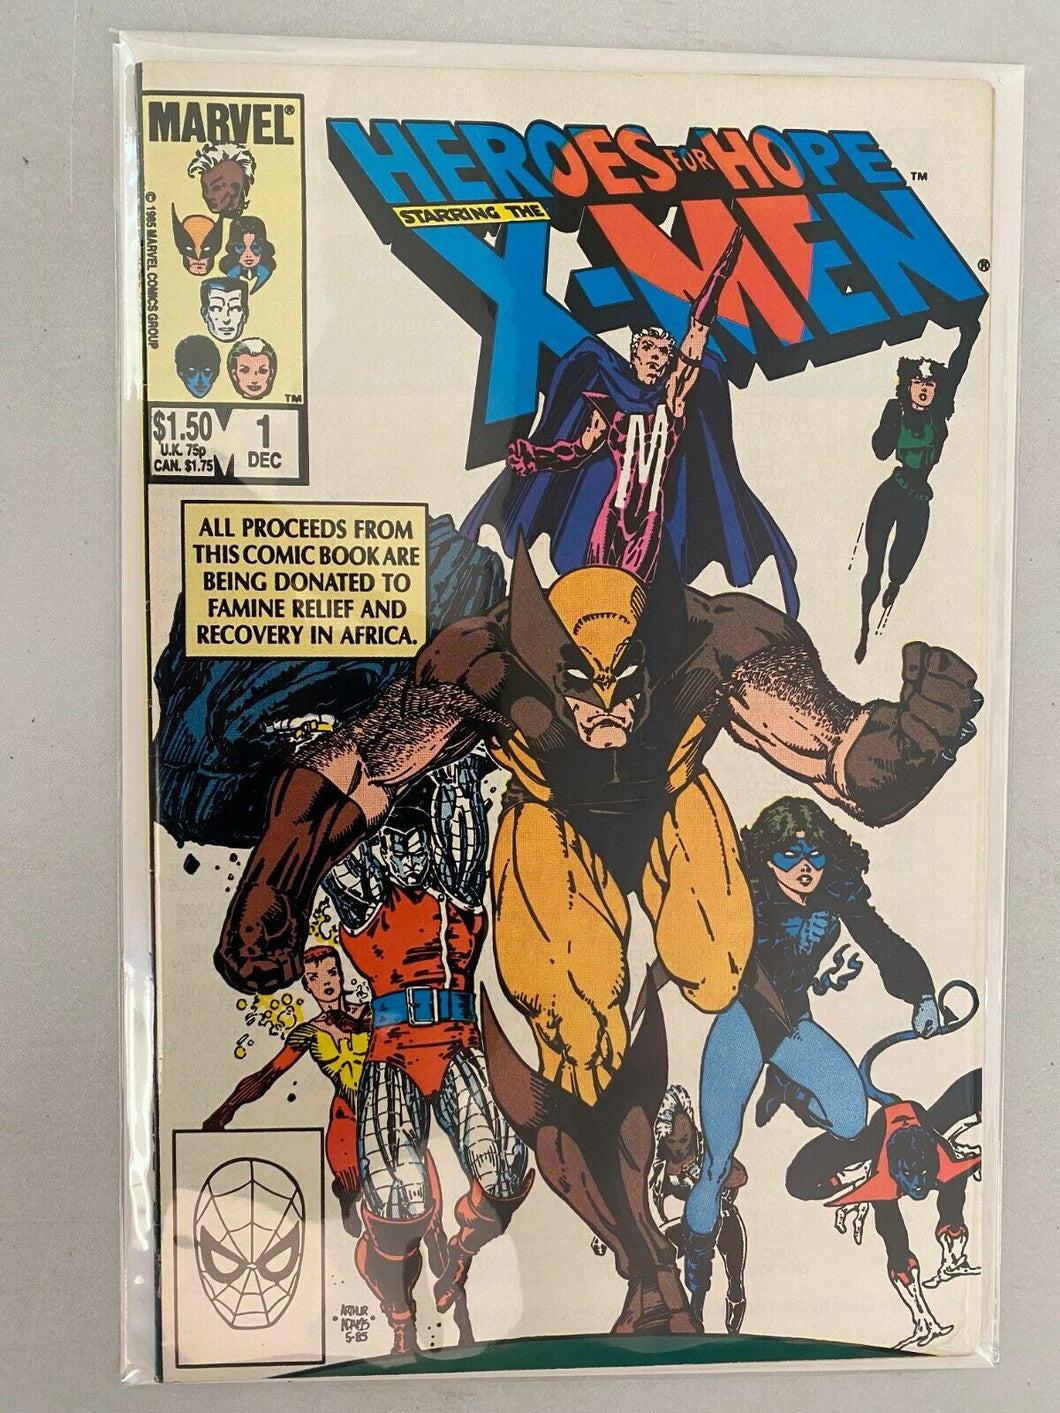 Heroes for Hope Starring the X-Men #1 Direct edition 6.0 FN (1985)